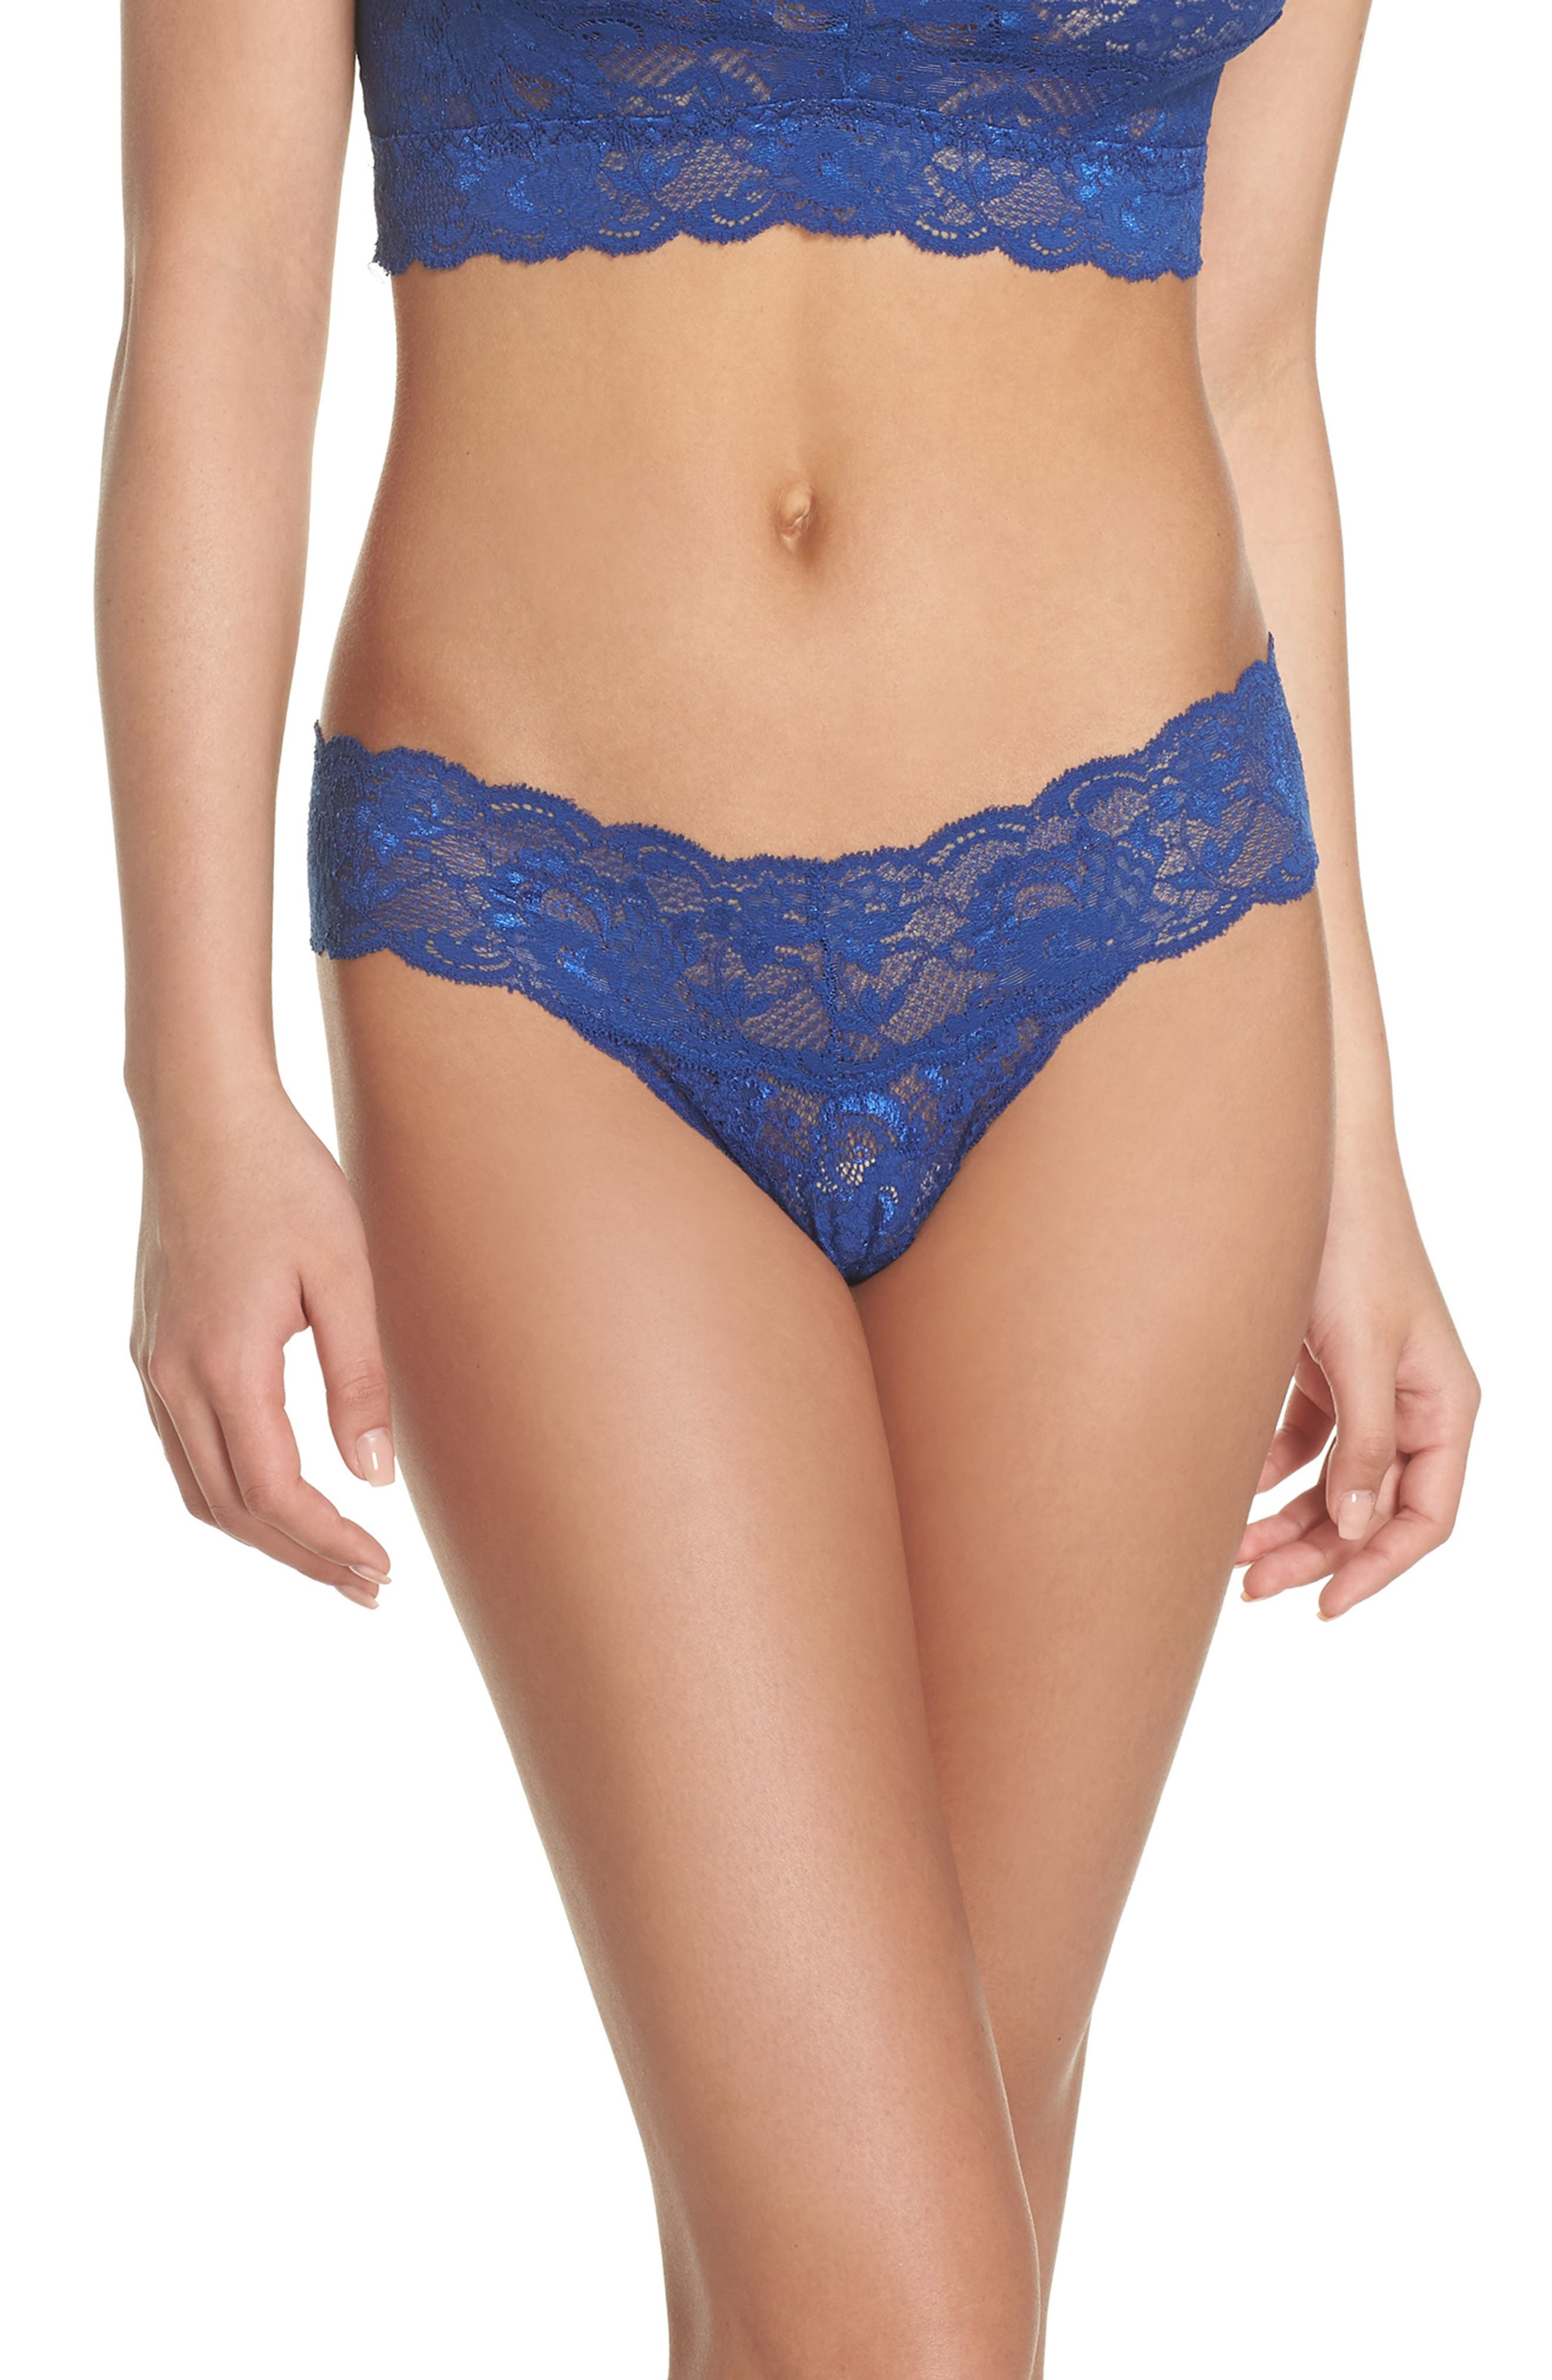 'Never Say Never Cutie' Thong,                             Alternate thumbnail 115, color,